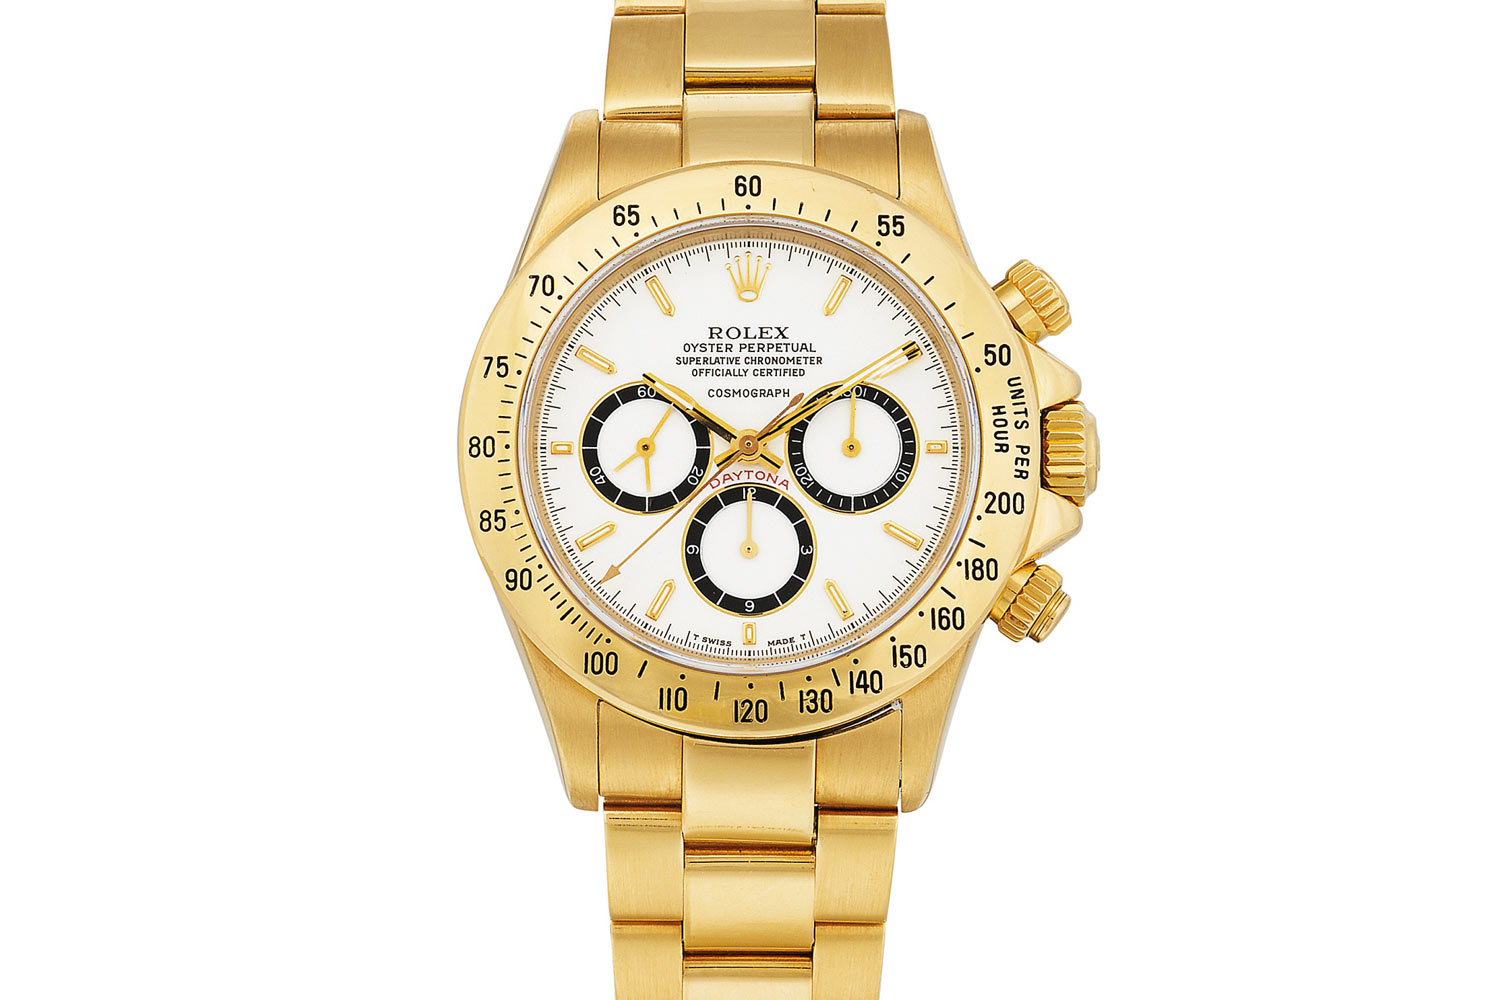 Lot 255: Rolex 'Floating Cosmograph Zenith' Daytona Ref. 16528. Yellow gold chronograph wristwatch with bracelet, white 'porcelain' dial and suspended logo, circa 1988